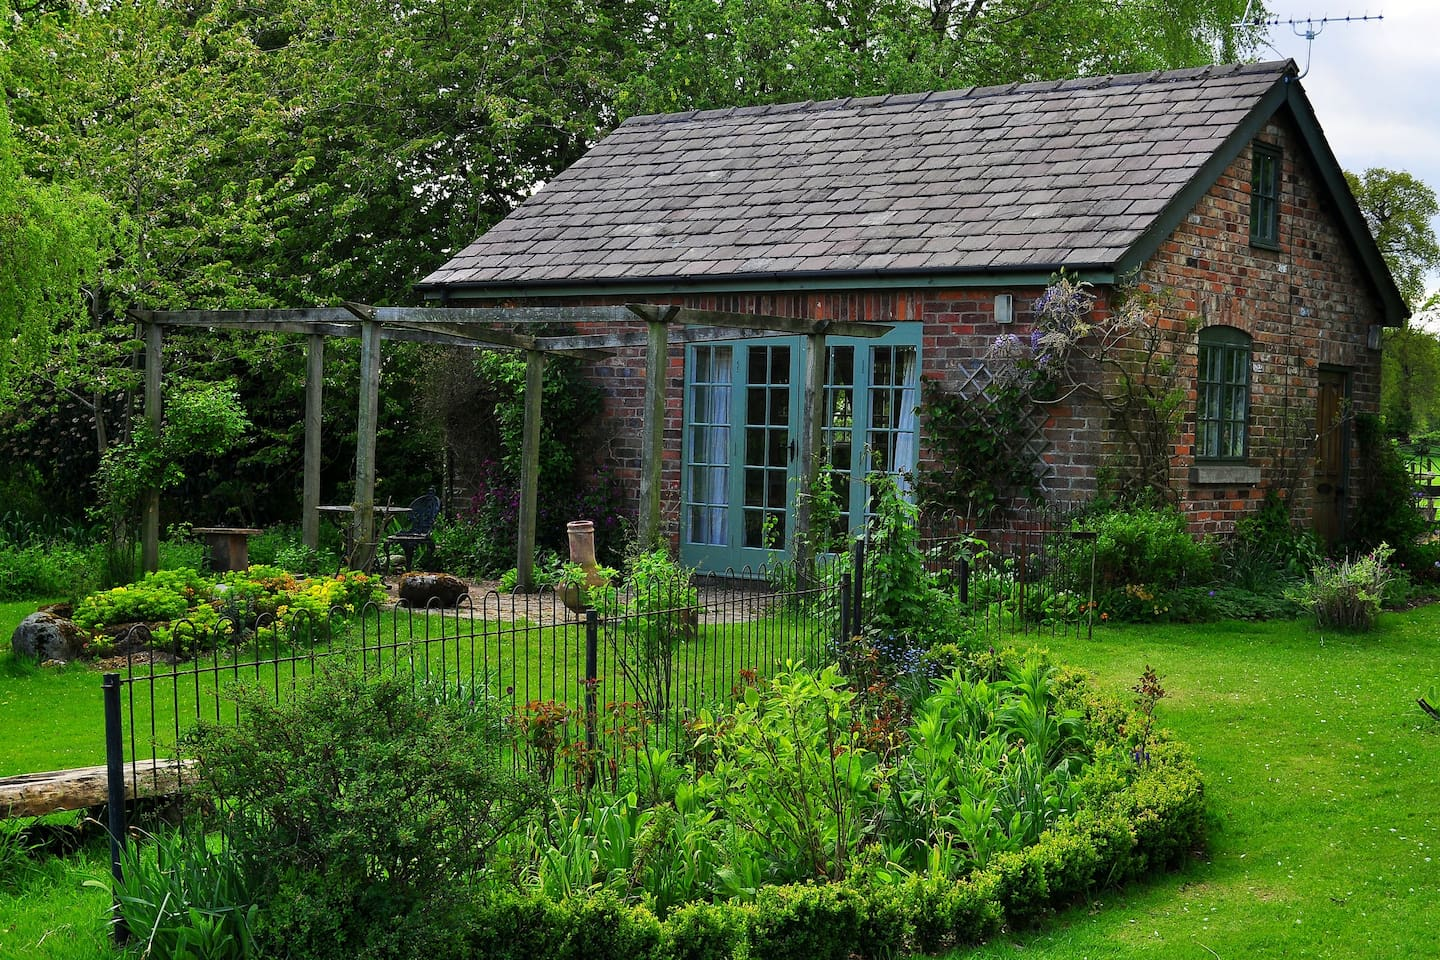 Lovely little cottage with a view overlooking an idyllic pond with outside seating